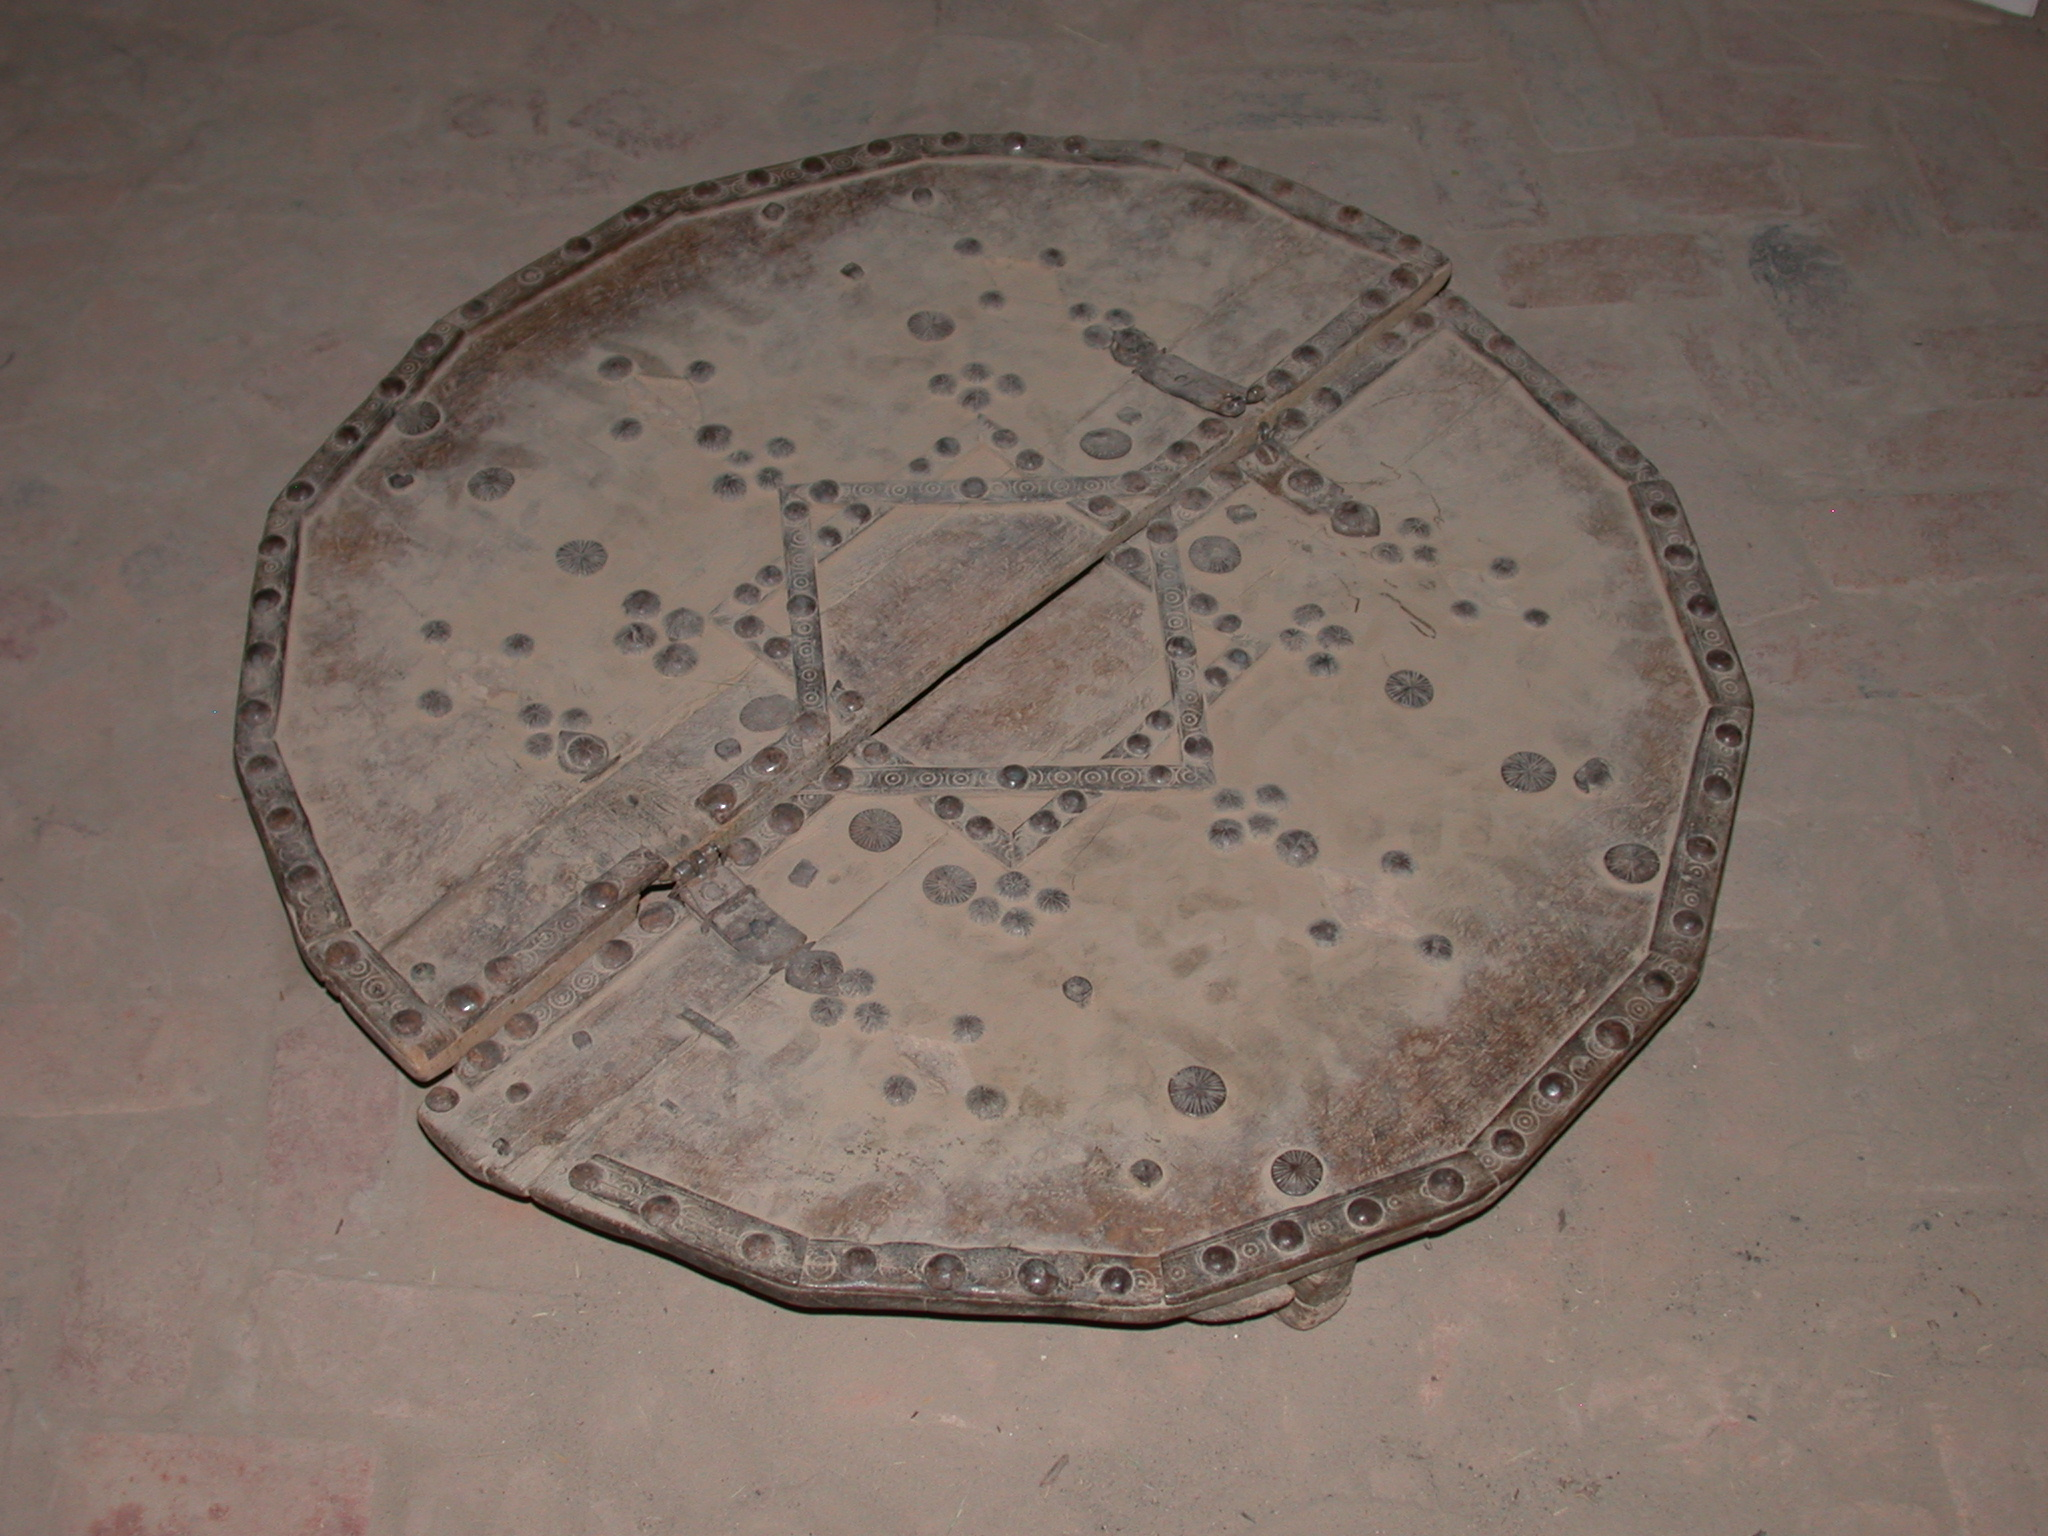 Folding Table, Timbuktu Ethnological Museum, Timbuktu, Mali